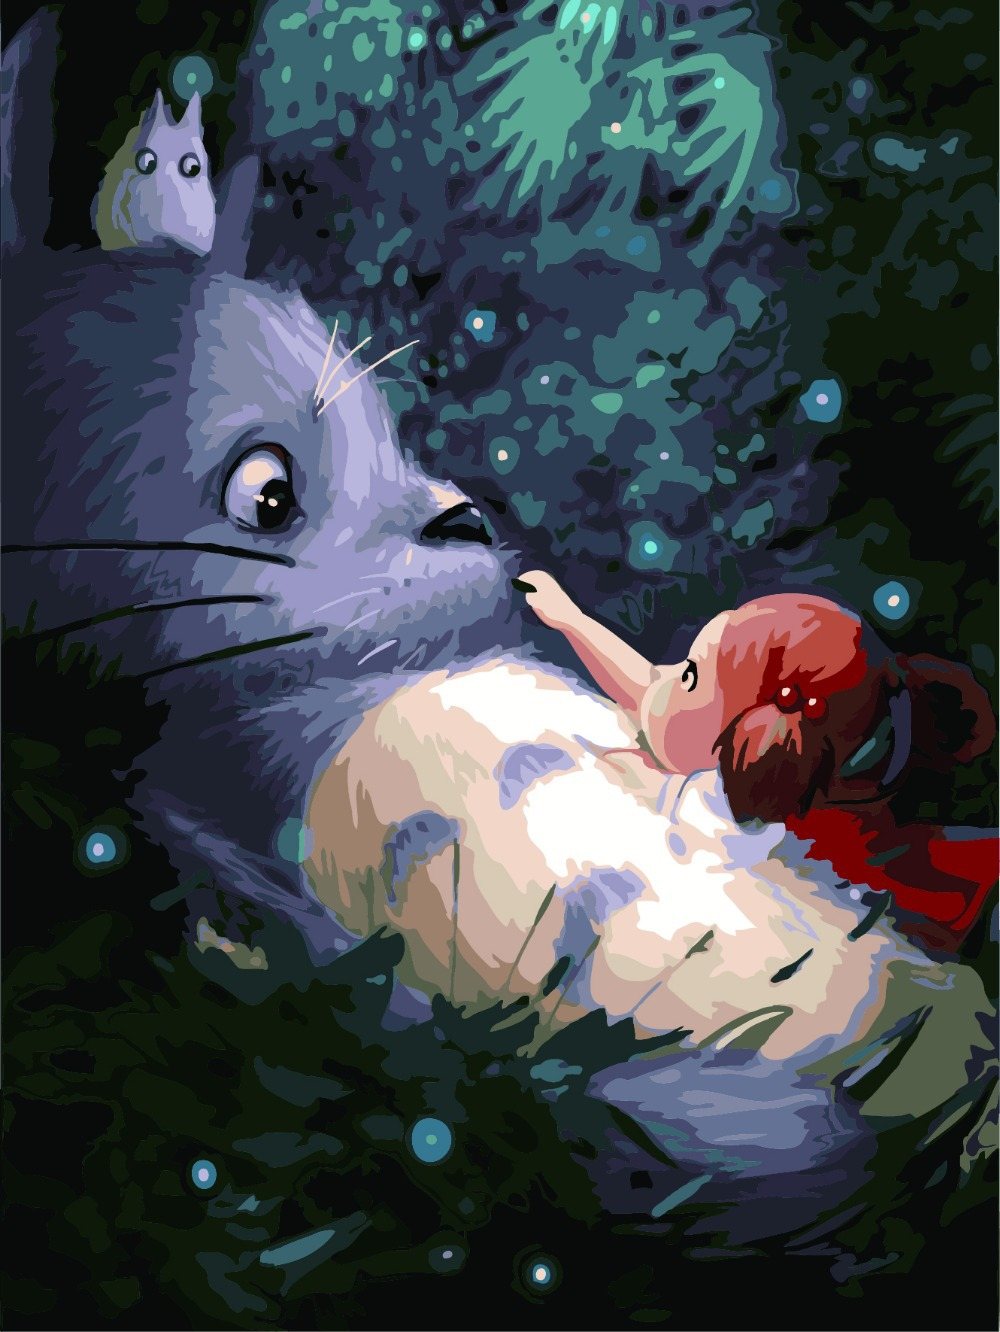 Totoro Pictures Reviews - Online Shopping Totoro Pictures